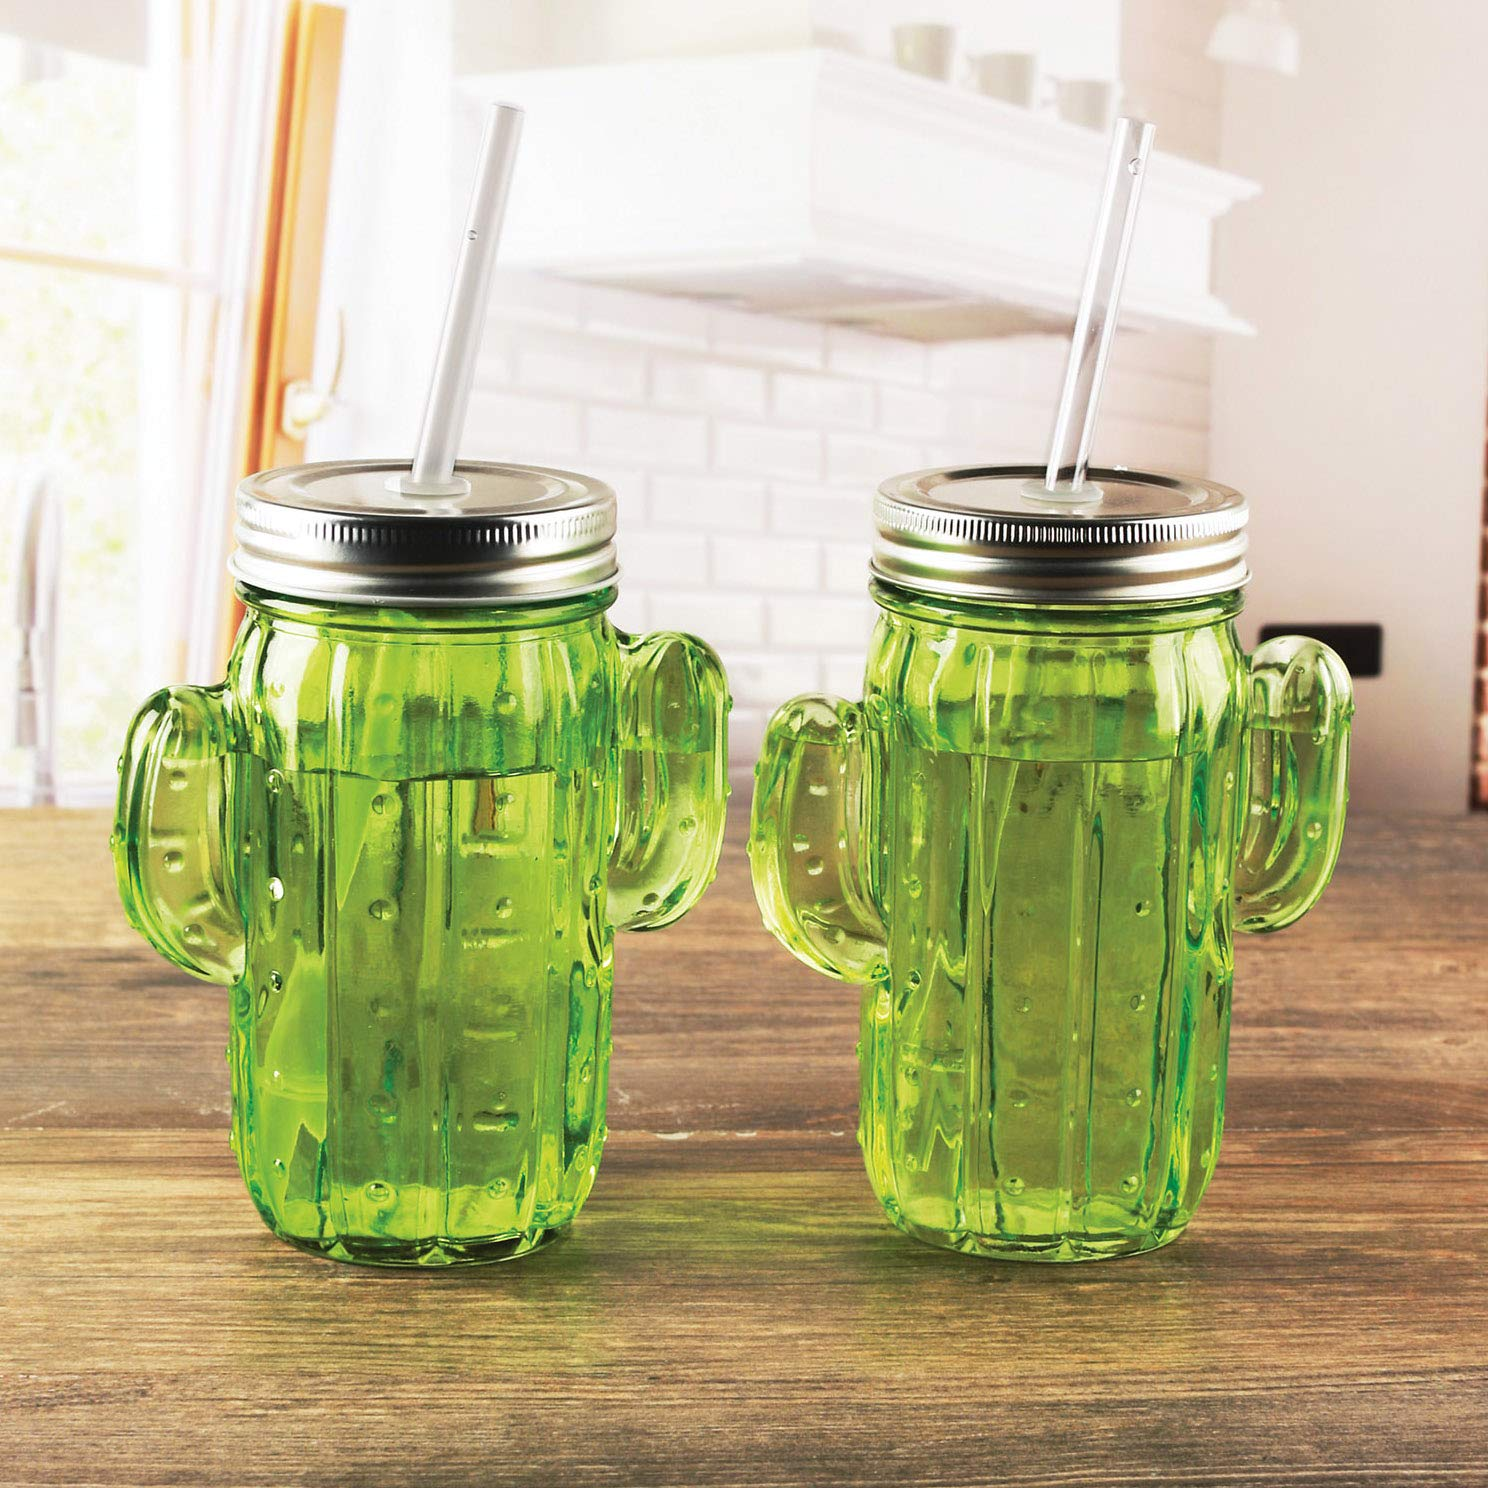 Circleware Green Glass Cactus Mason Sipper with Metal Lid and Straw, Set of 4, 15.5 Oz by Circleware (Image #3)